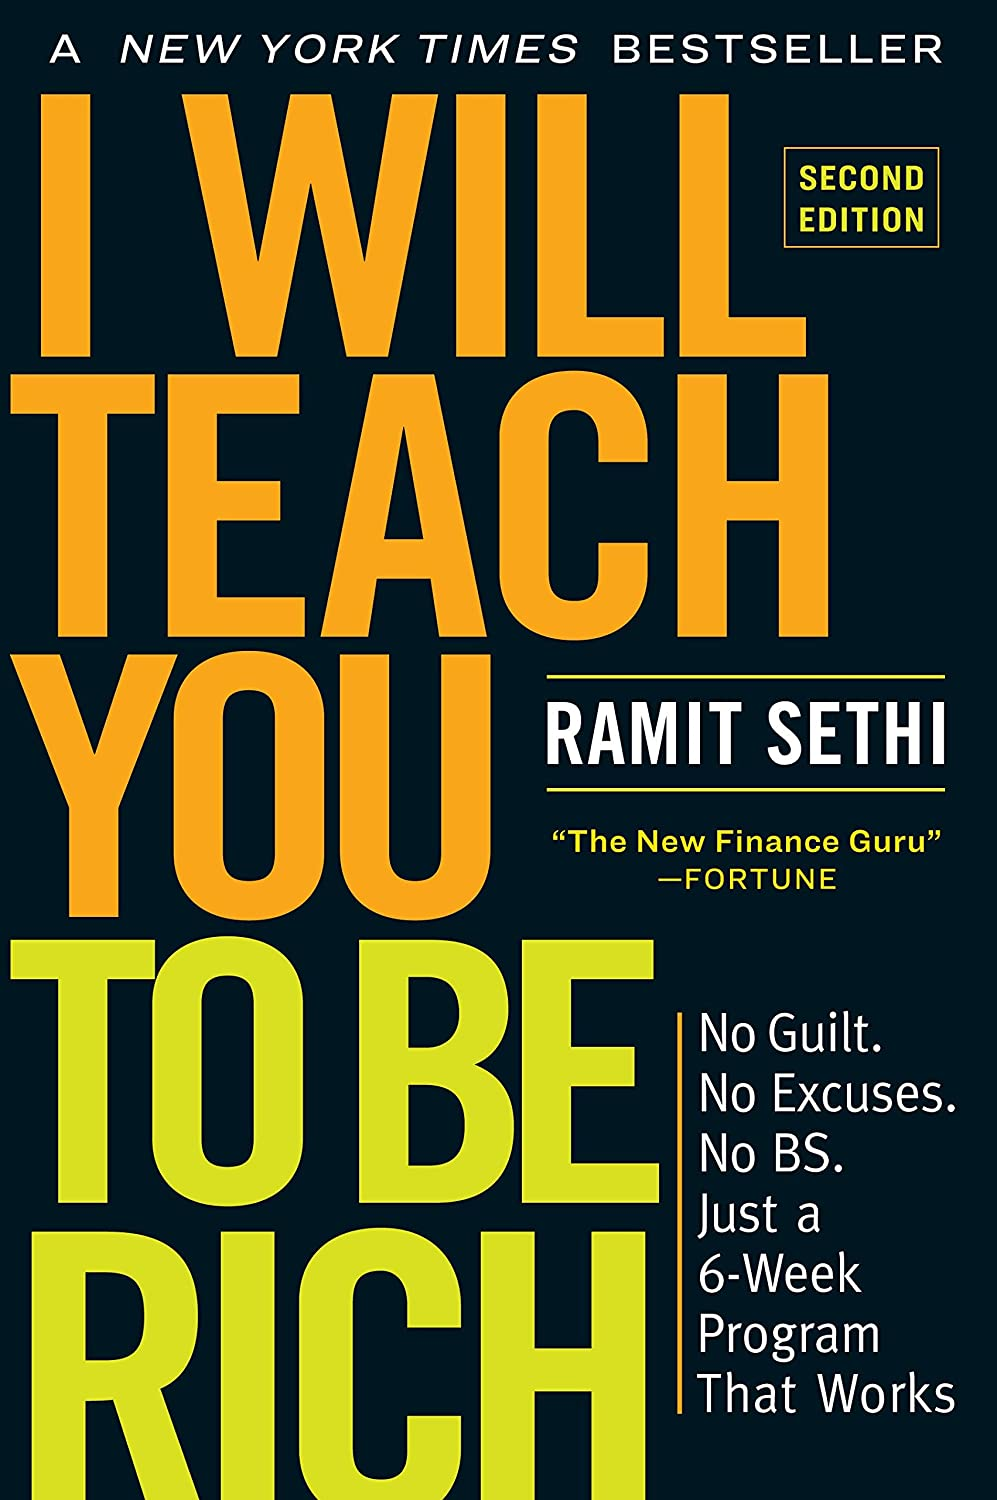 I Will Teach You to Be Rich No B.S Just a 6-Week Program That Works. Second Edition: No Guilt No Excuses